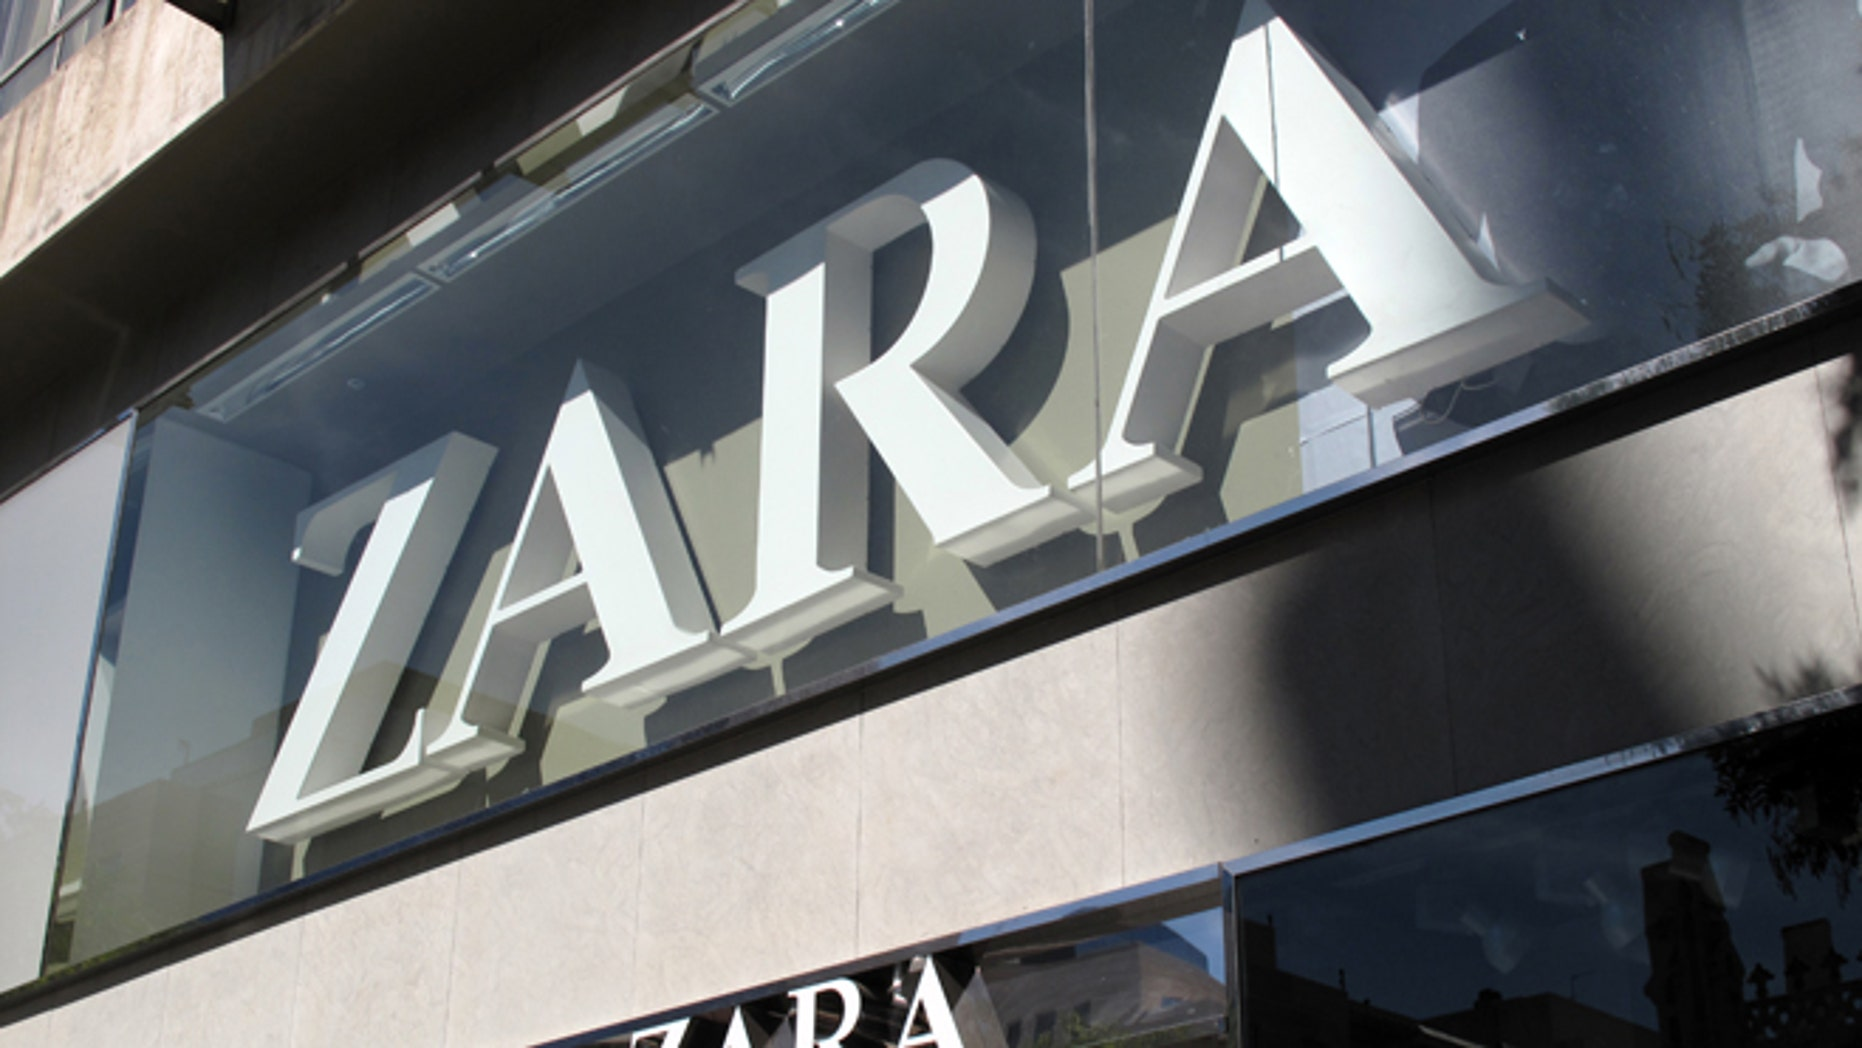 Logotype of Zara at the entrance of a fashion shop's in Madrid, october 2010. (Photo by Cristina Arias/Cover/Getty Images)